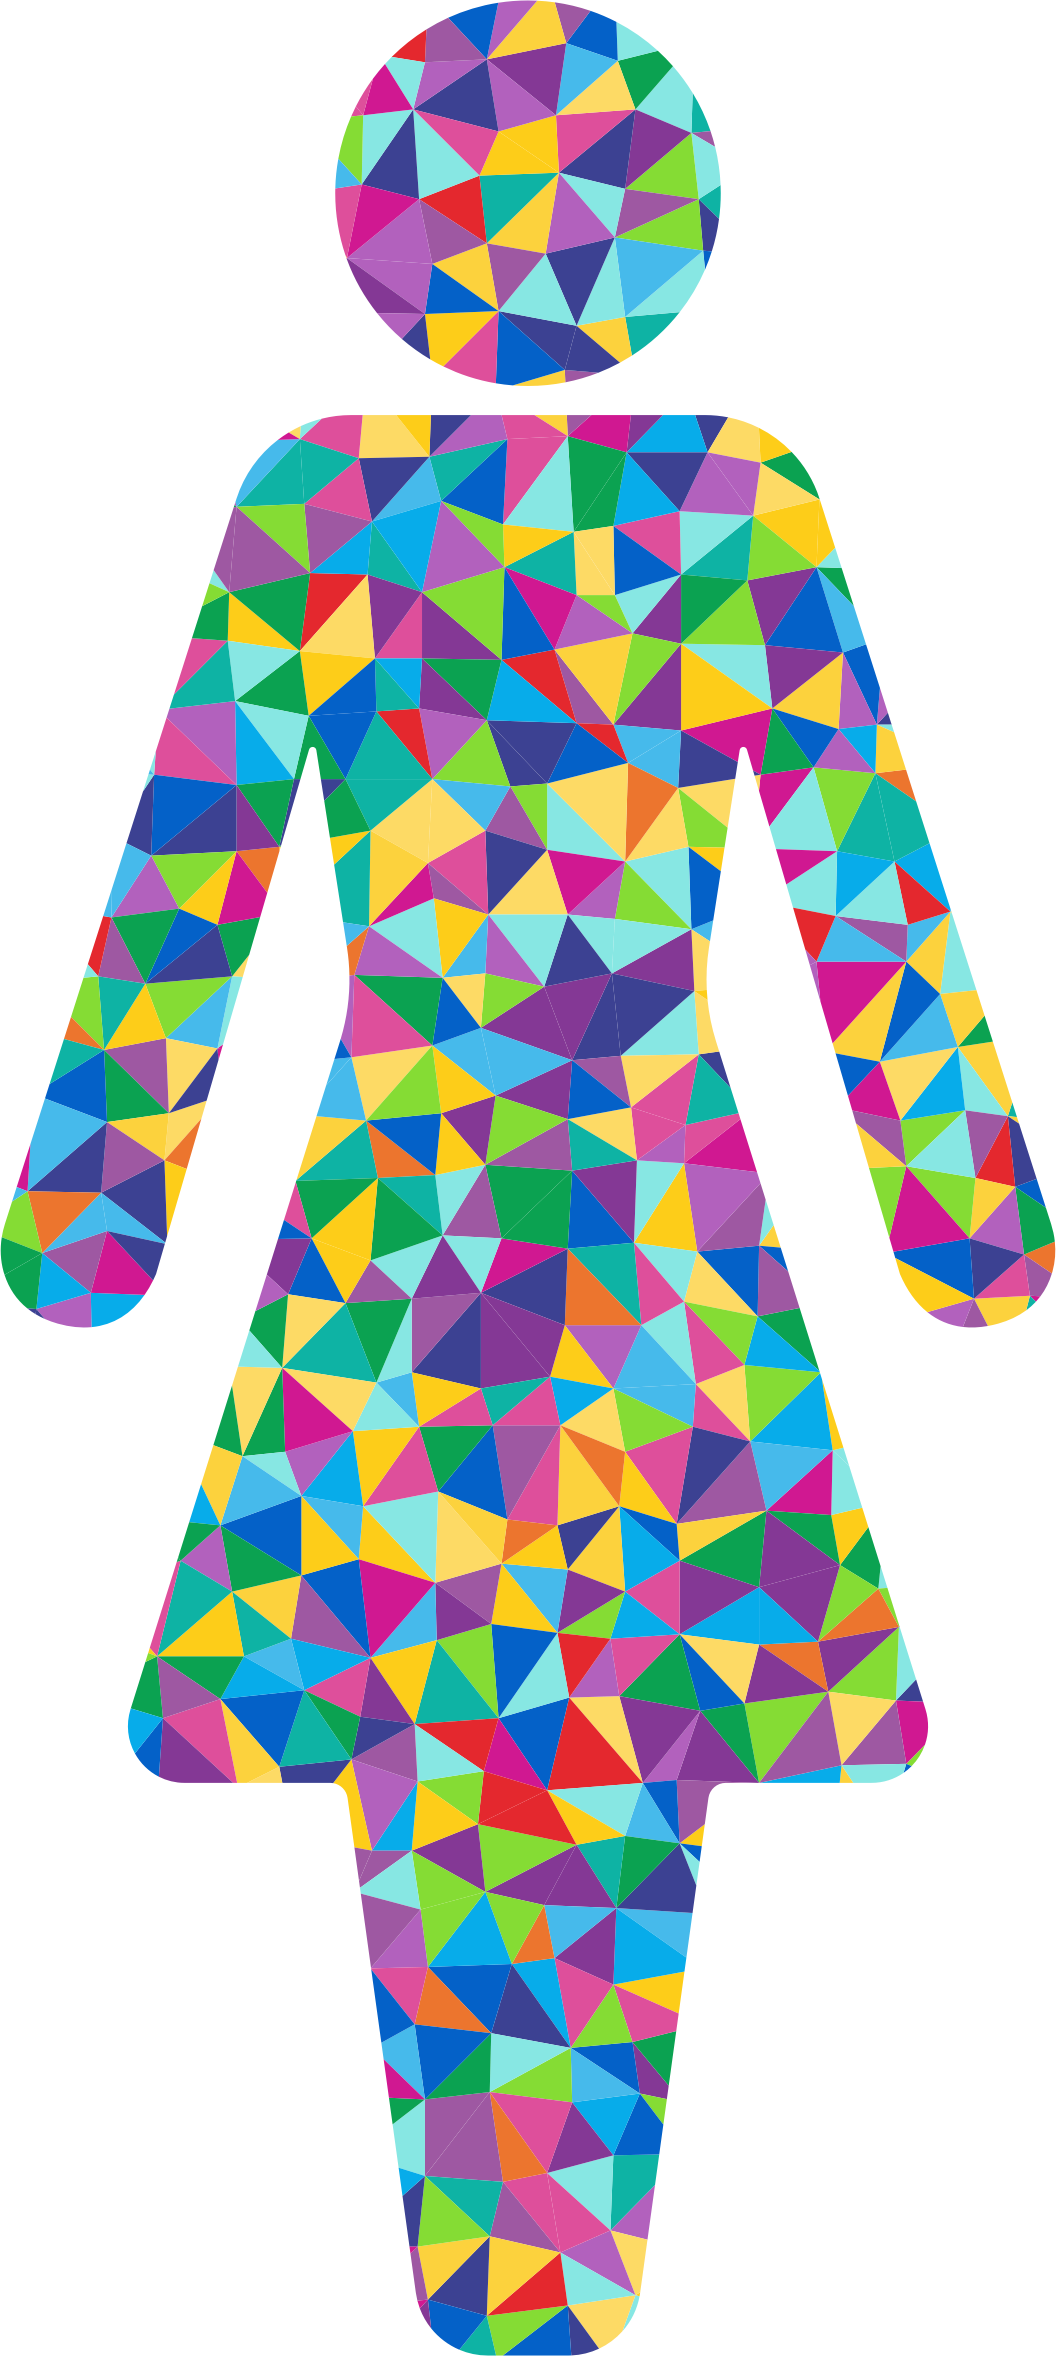 Prismatic Low Poly Female Symbol Silhouette by GDJ